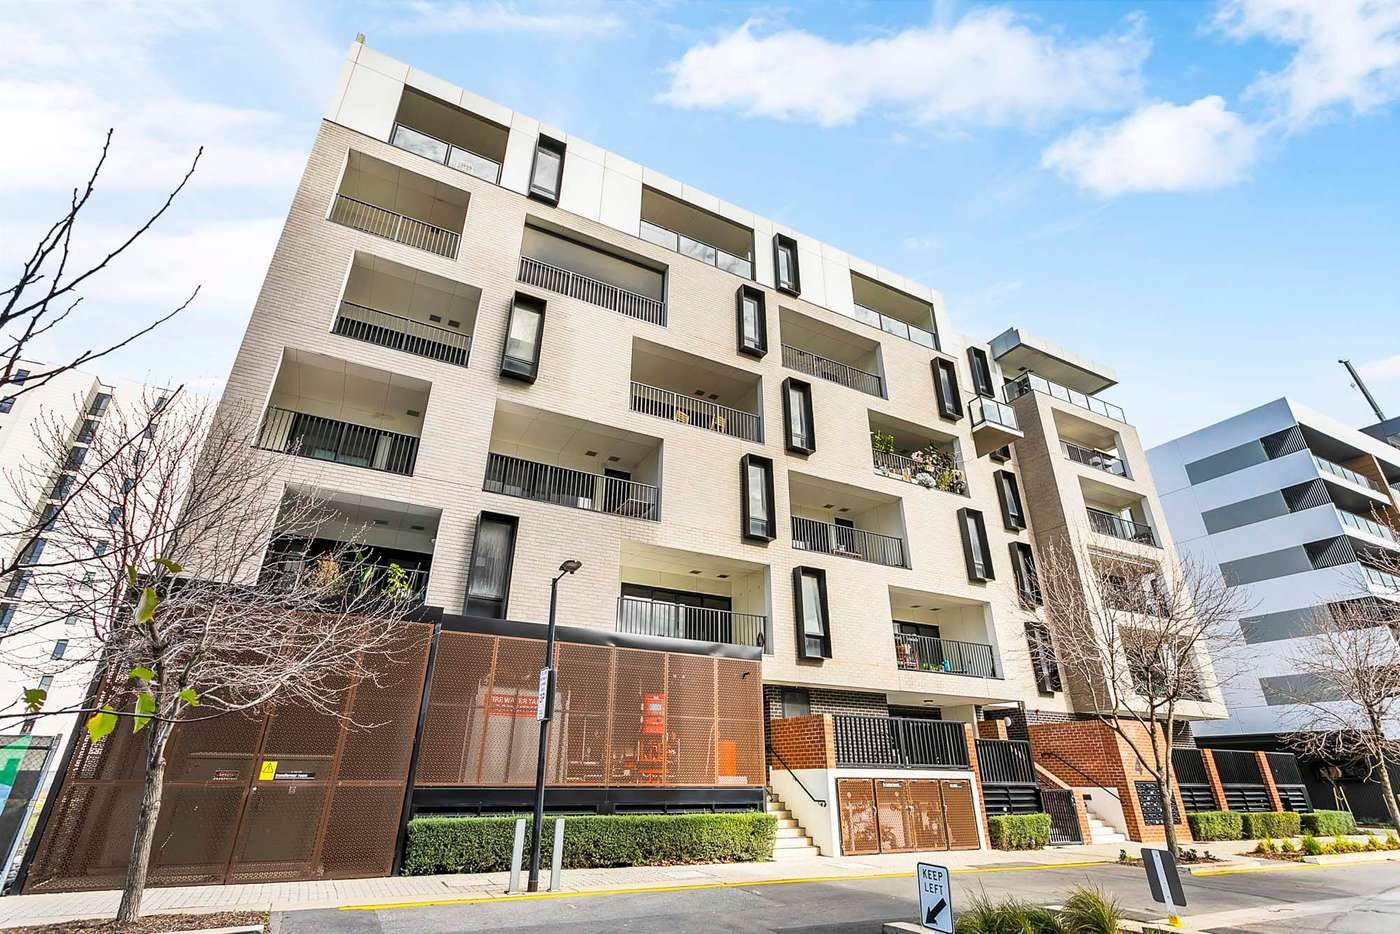 Main view of Homely apartment listing, 413/4 Fifth Street, Bowden SA 5007